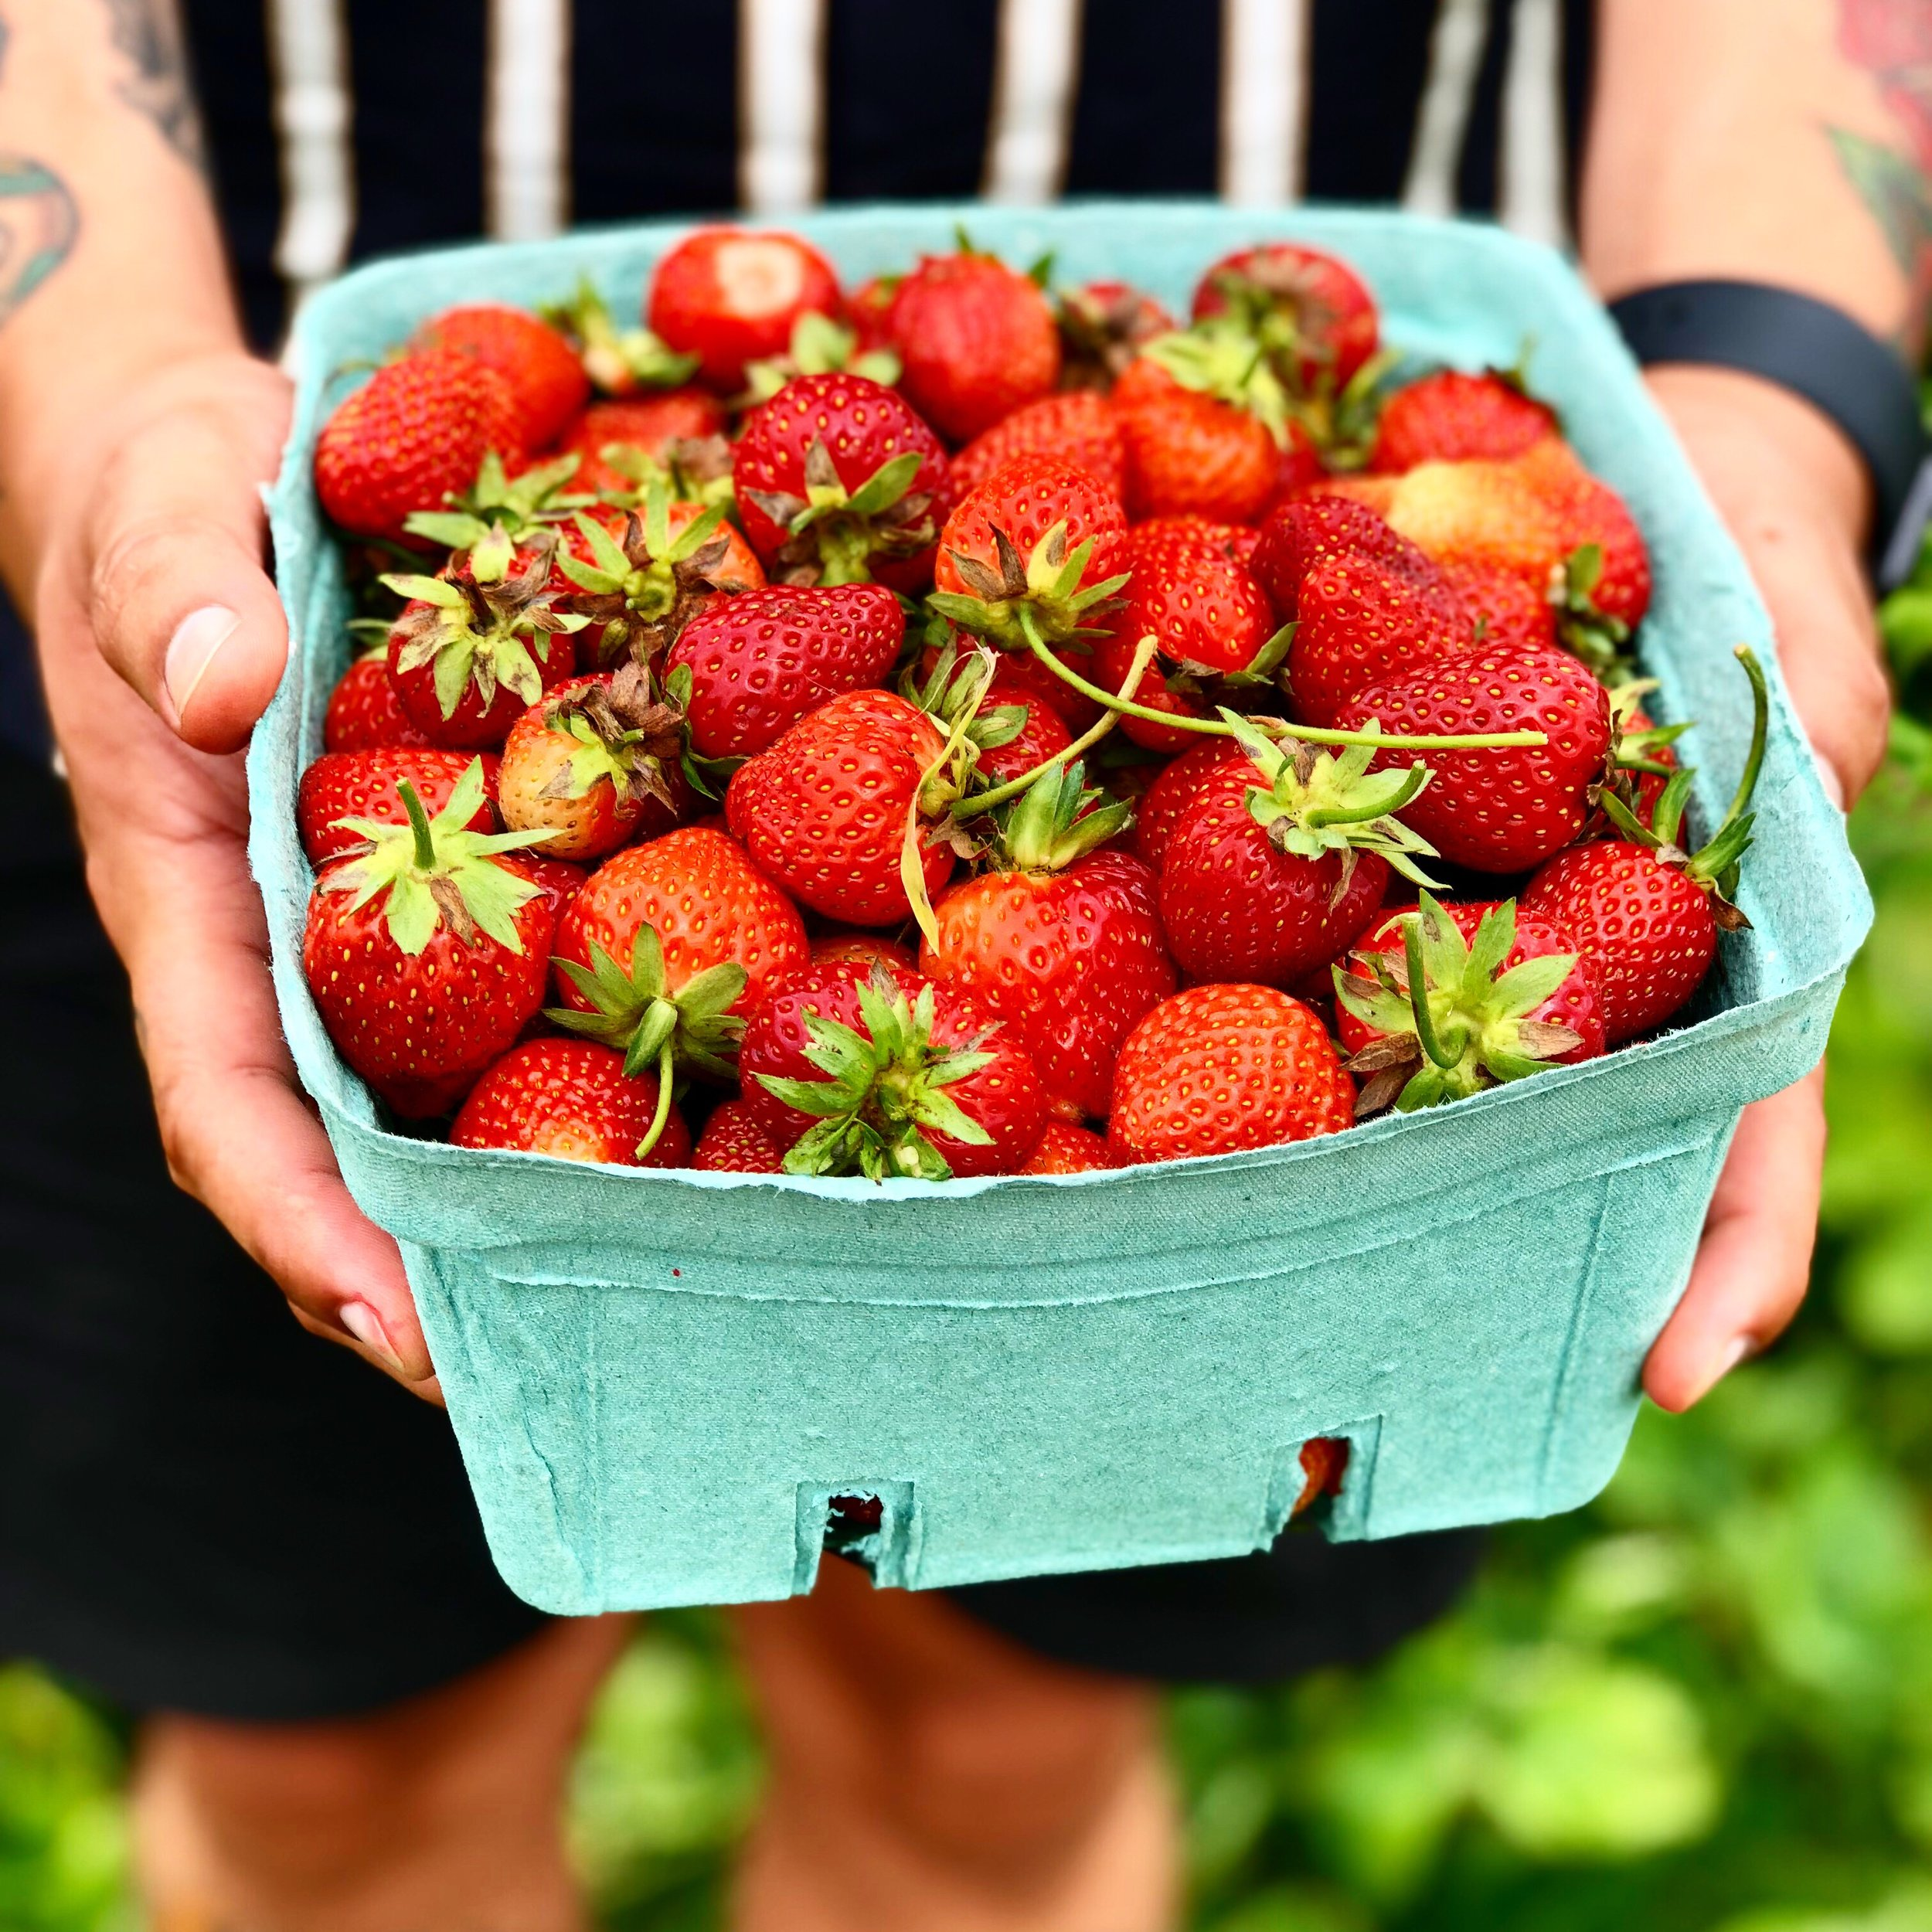 Summer is the perfect time to find a U-Pick farm near you where you can gather your own ingredients for your canning recipes.